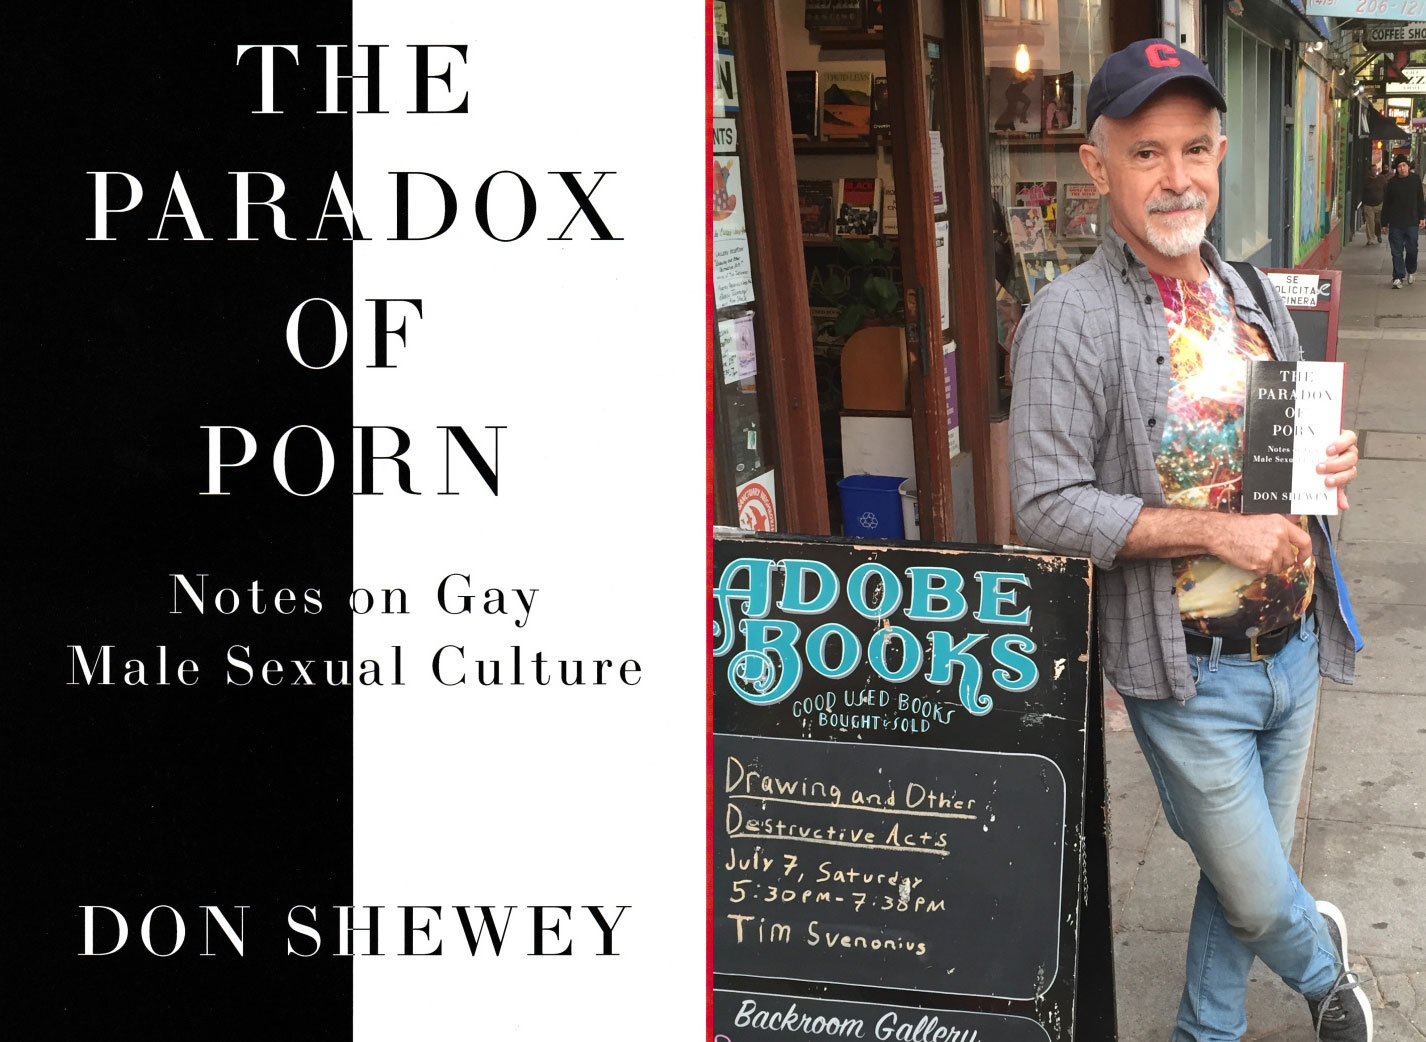 Don Shewey - The Paradox of Porn: Notes on Gay Male Culture